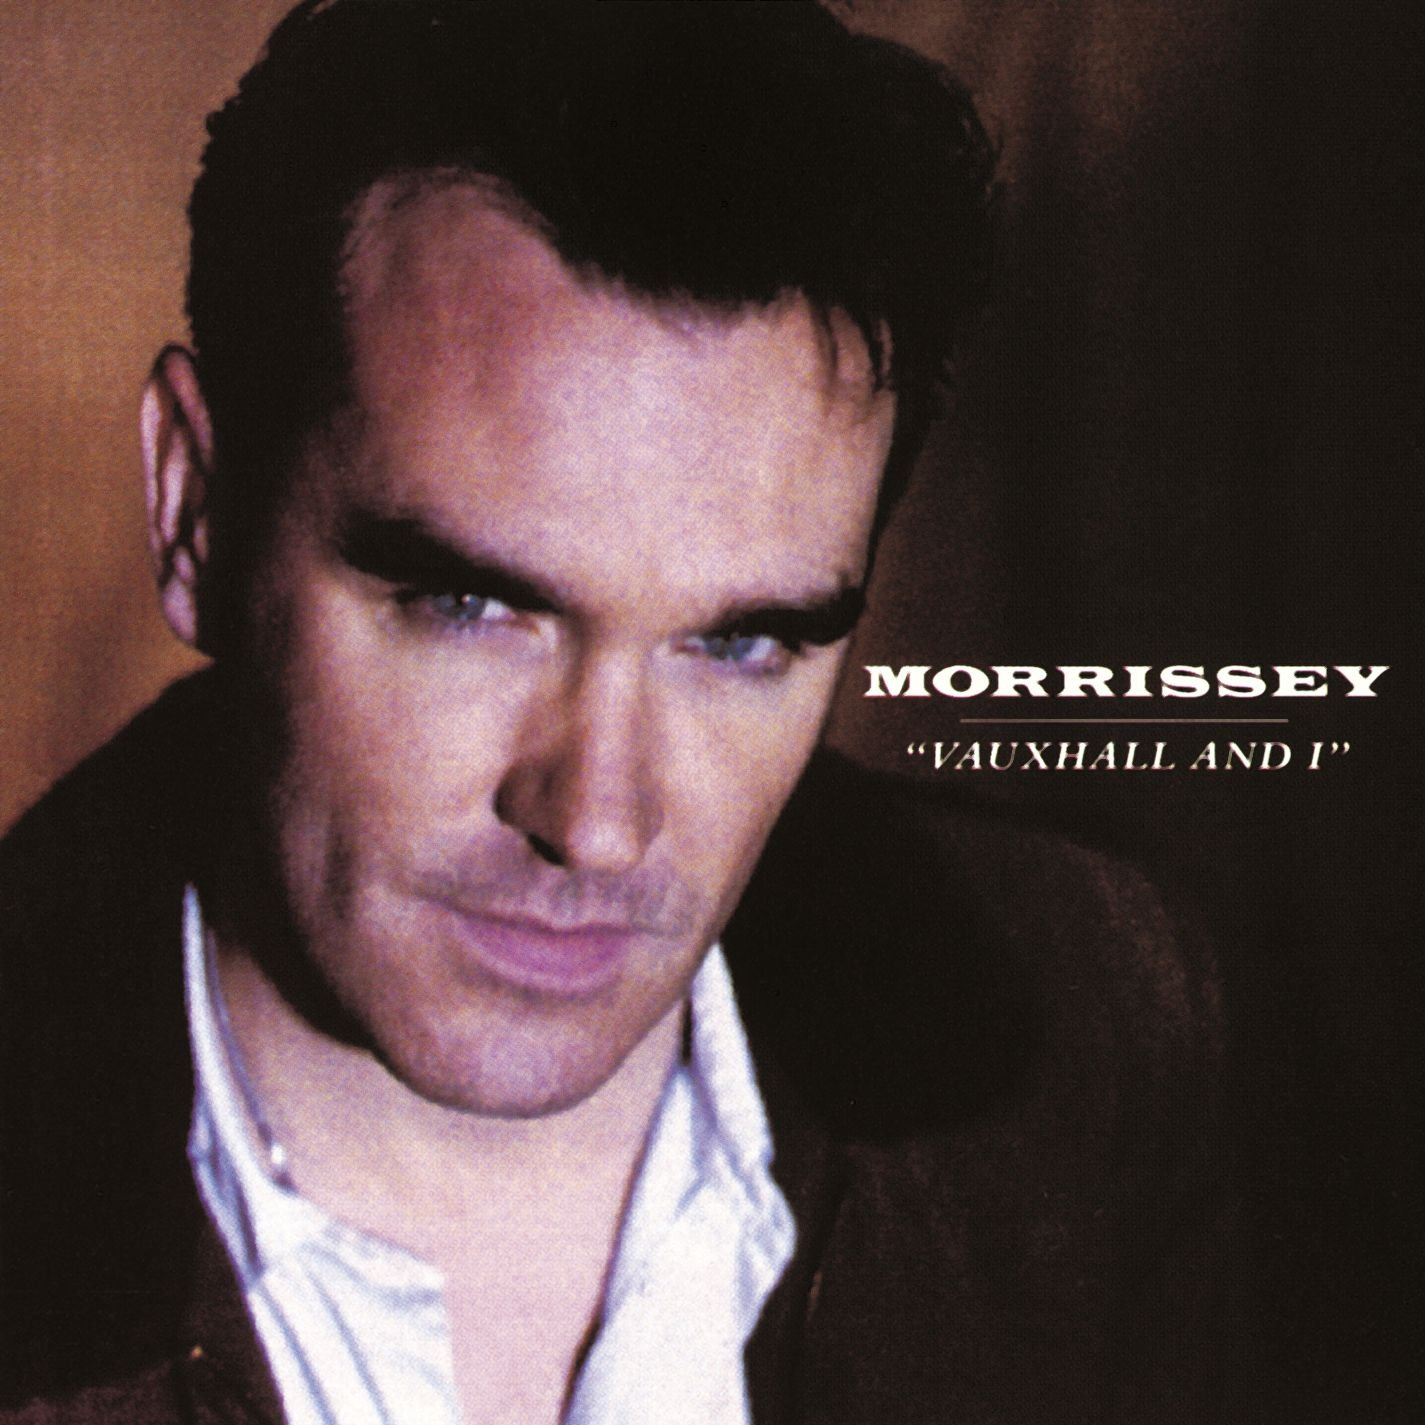 Morrissey - Vauxhall & I - Amazon.com Music